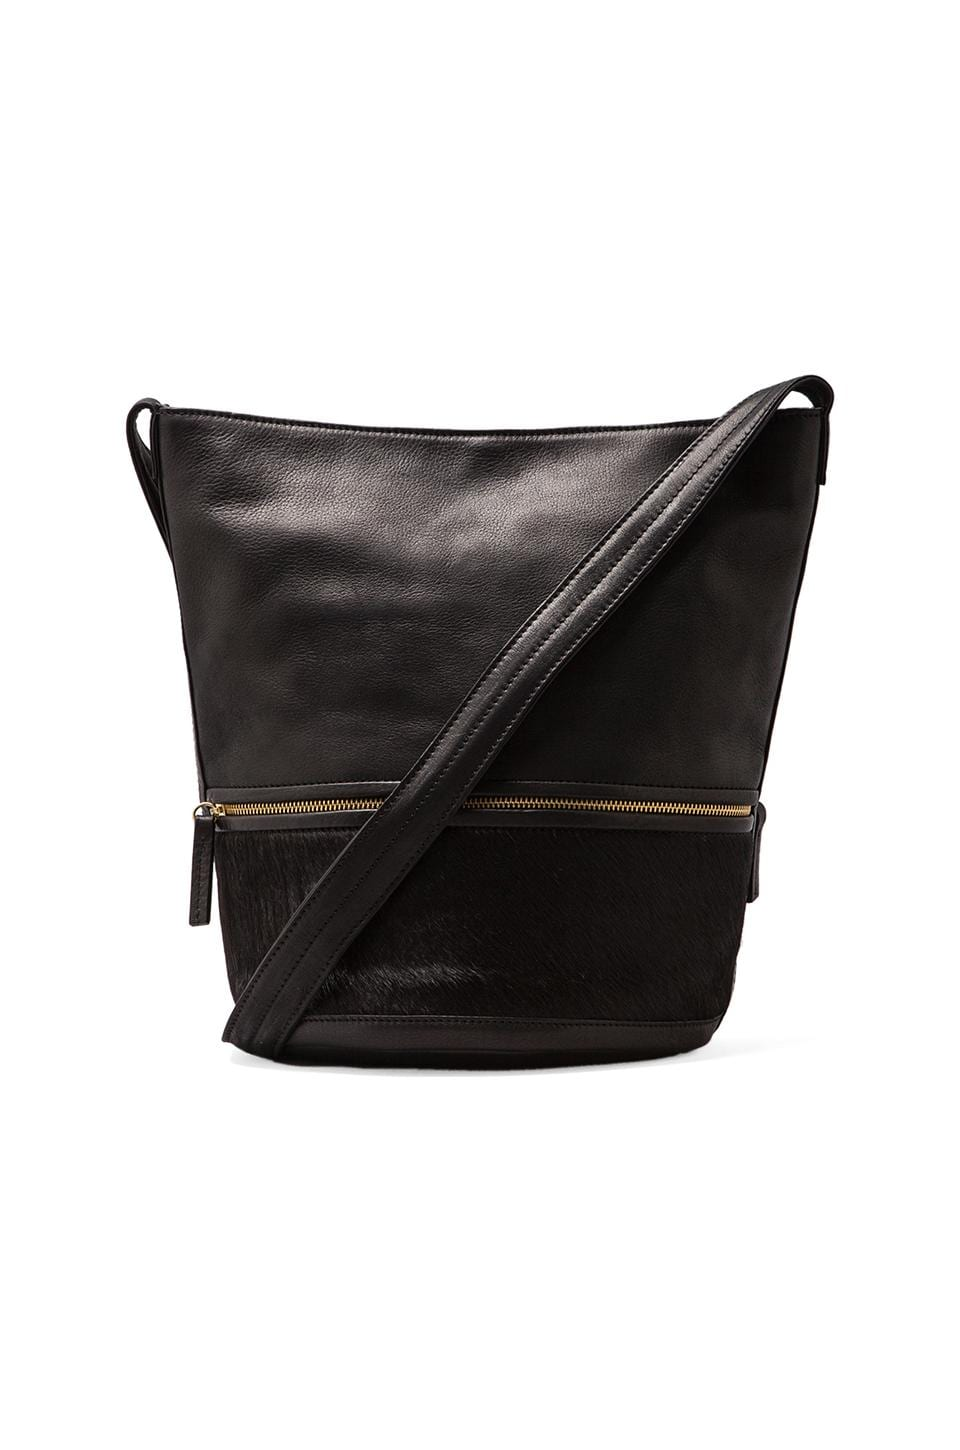 HARE + HART Small Bucket Bag in Black